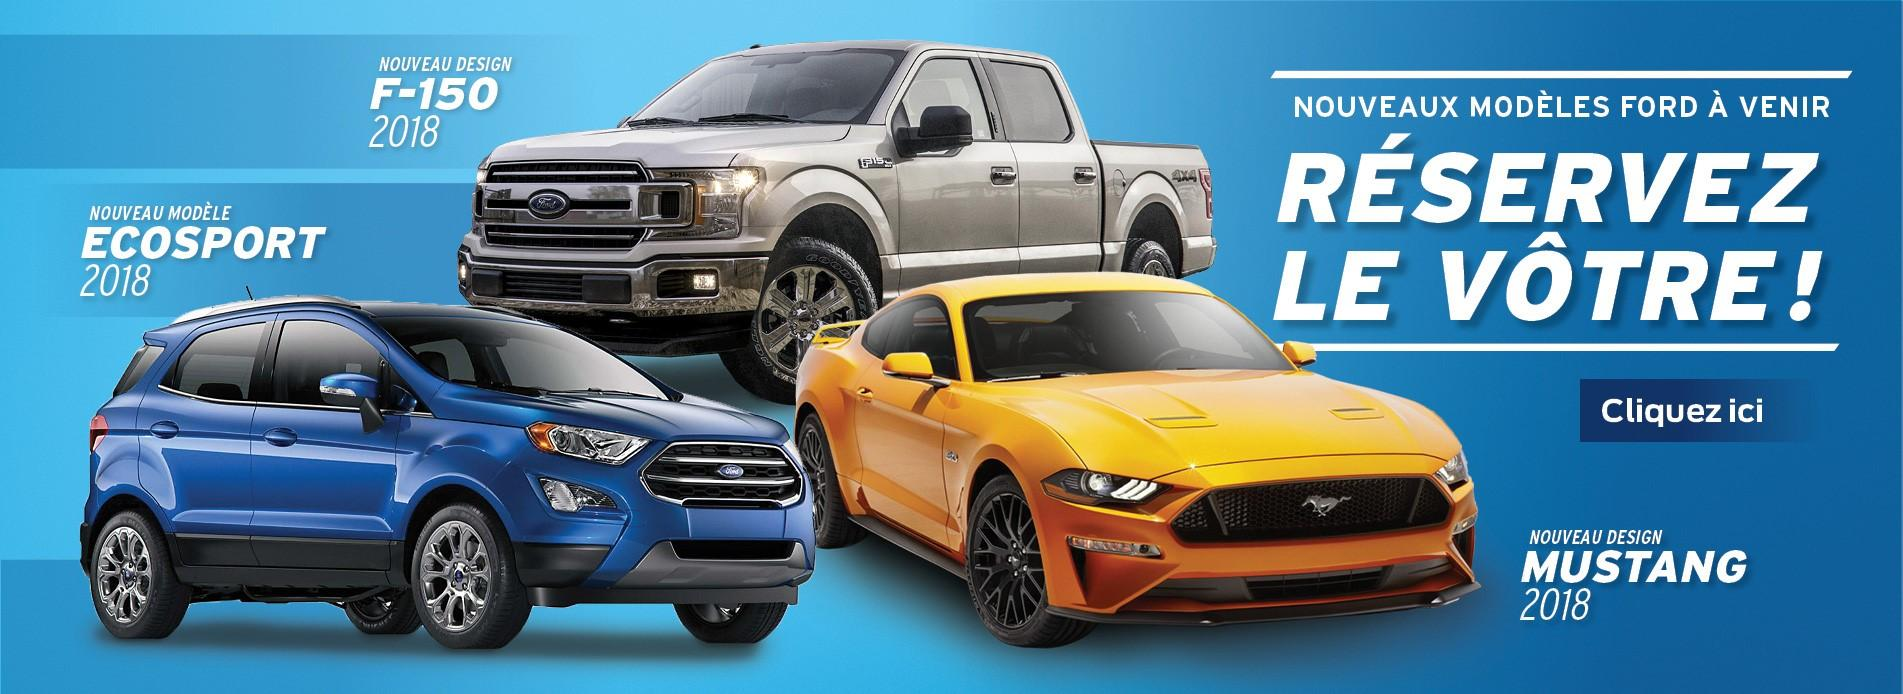 ford ecosport f-150 mustang 2018 gatineau